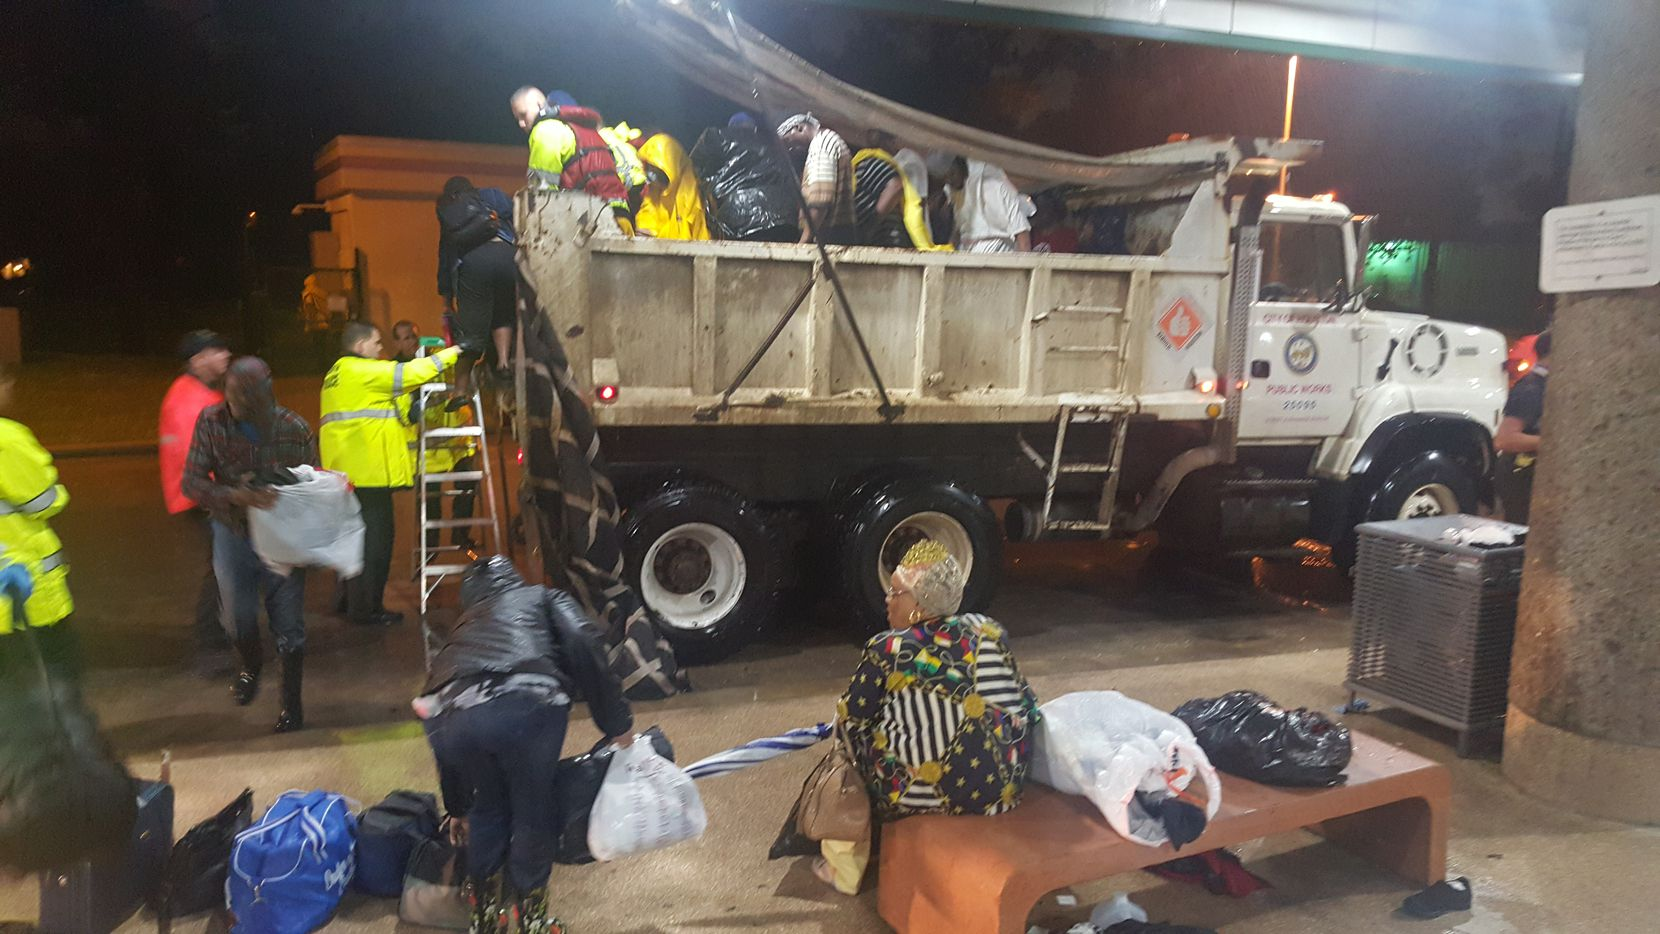 A dump truck pulls into Houston's Kashmere Transit Center with people rescued from Hurricane Harvey around midnight Monday.